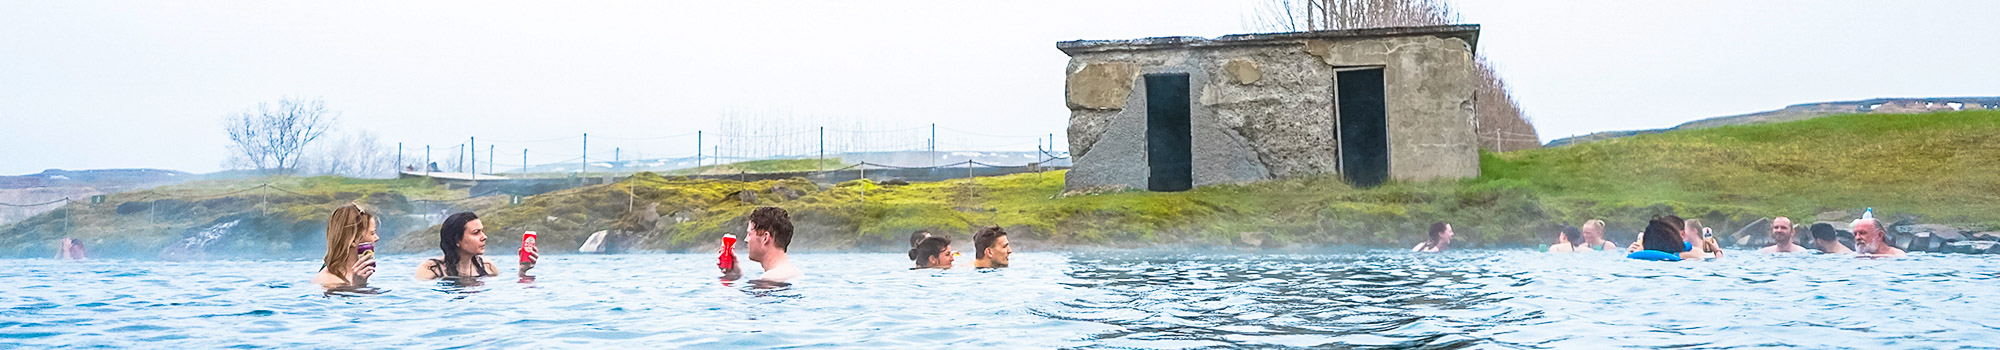 People bathing in Secret Lagoon in South of Iceland